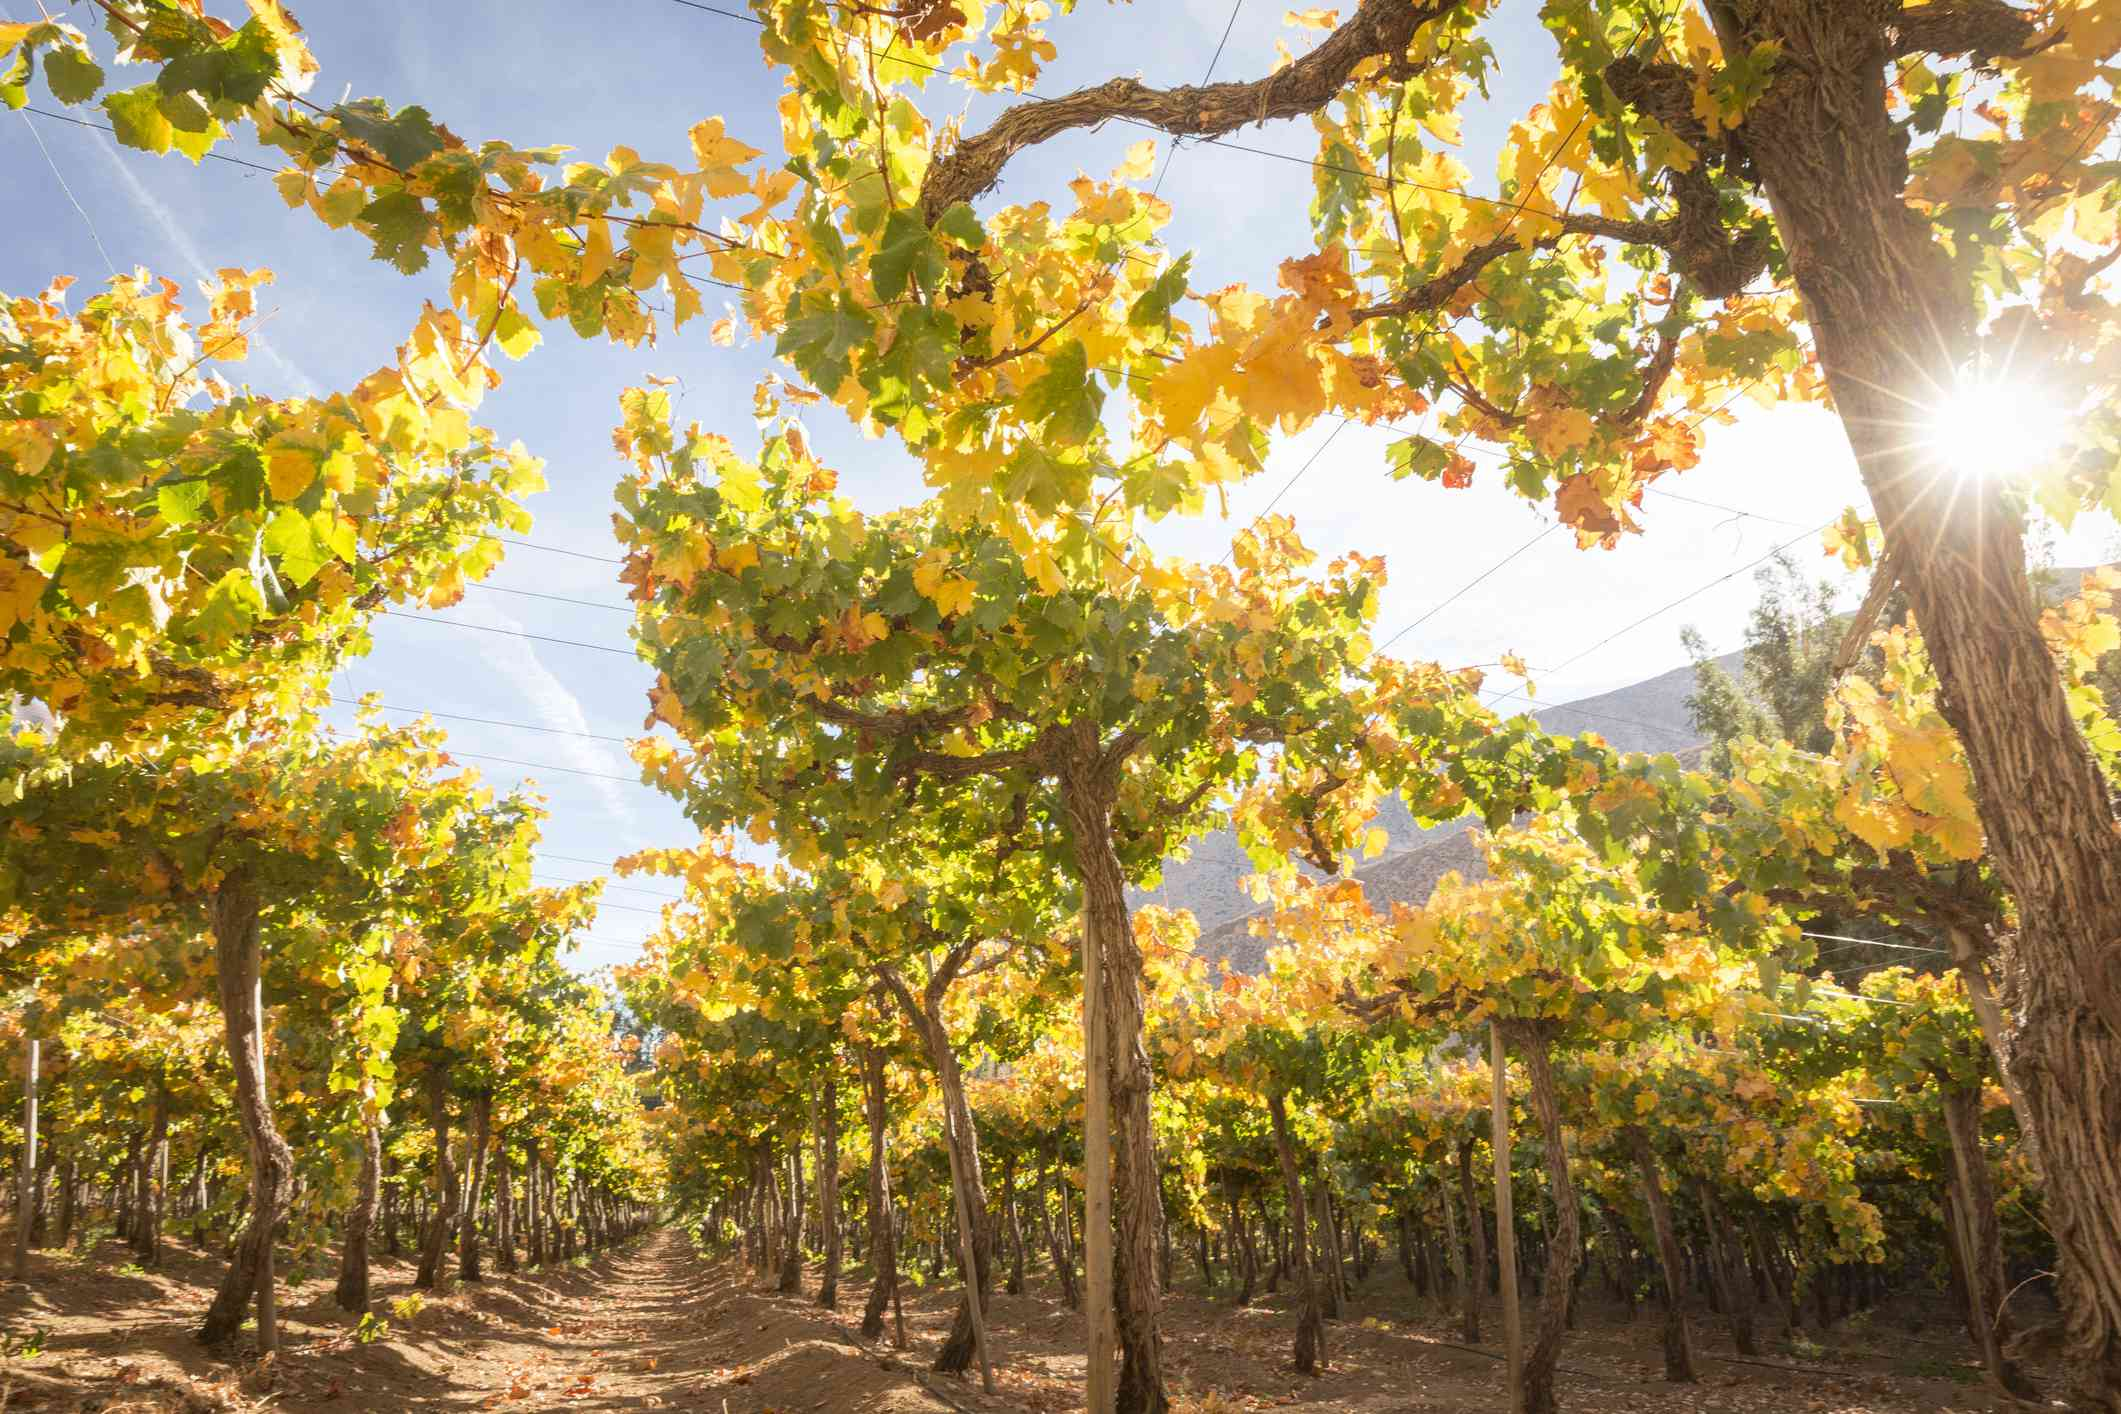 Pisco grapes in Elqui Valley, Chile